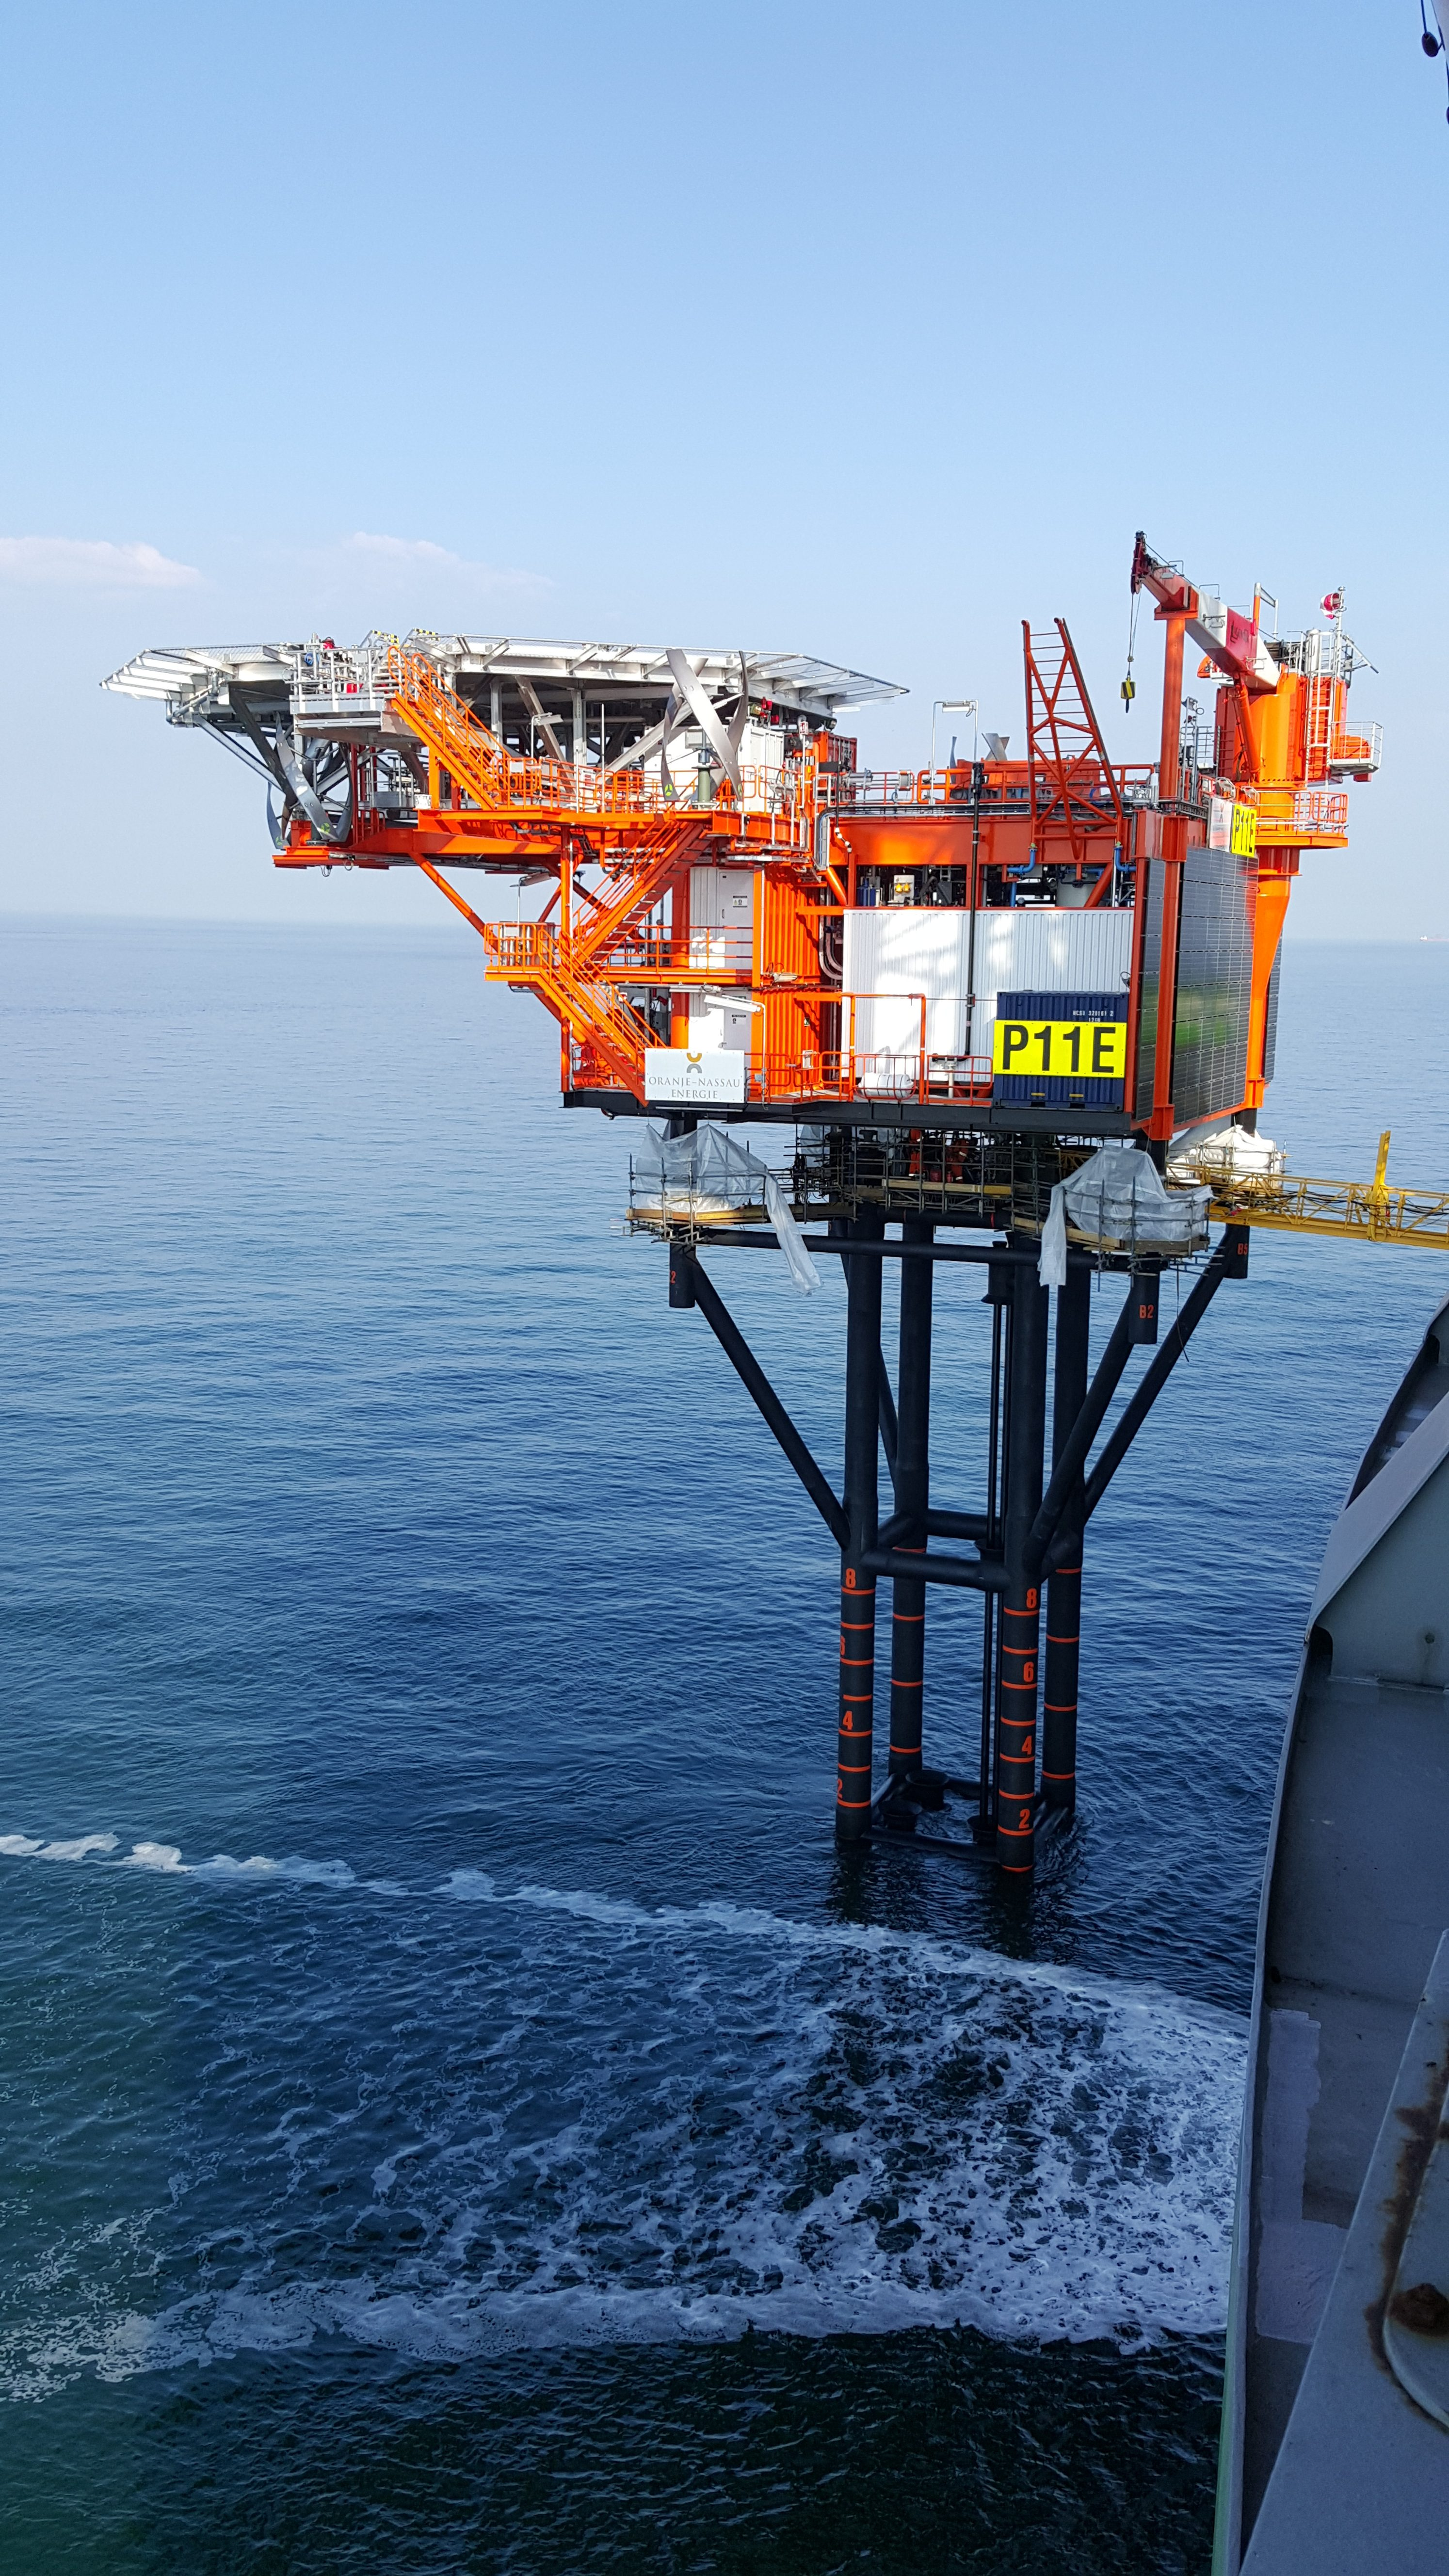 welding_offshore_project-nassau-project-RAM-multi-invest13